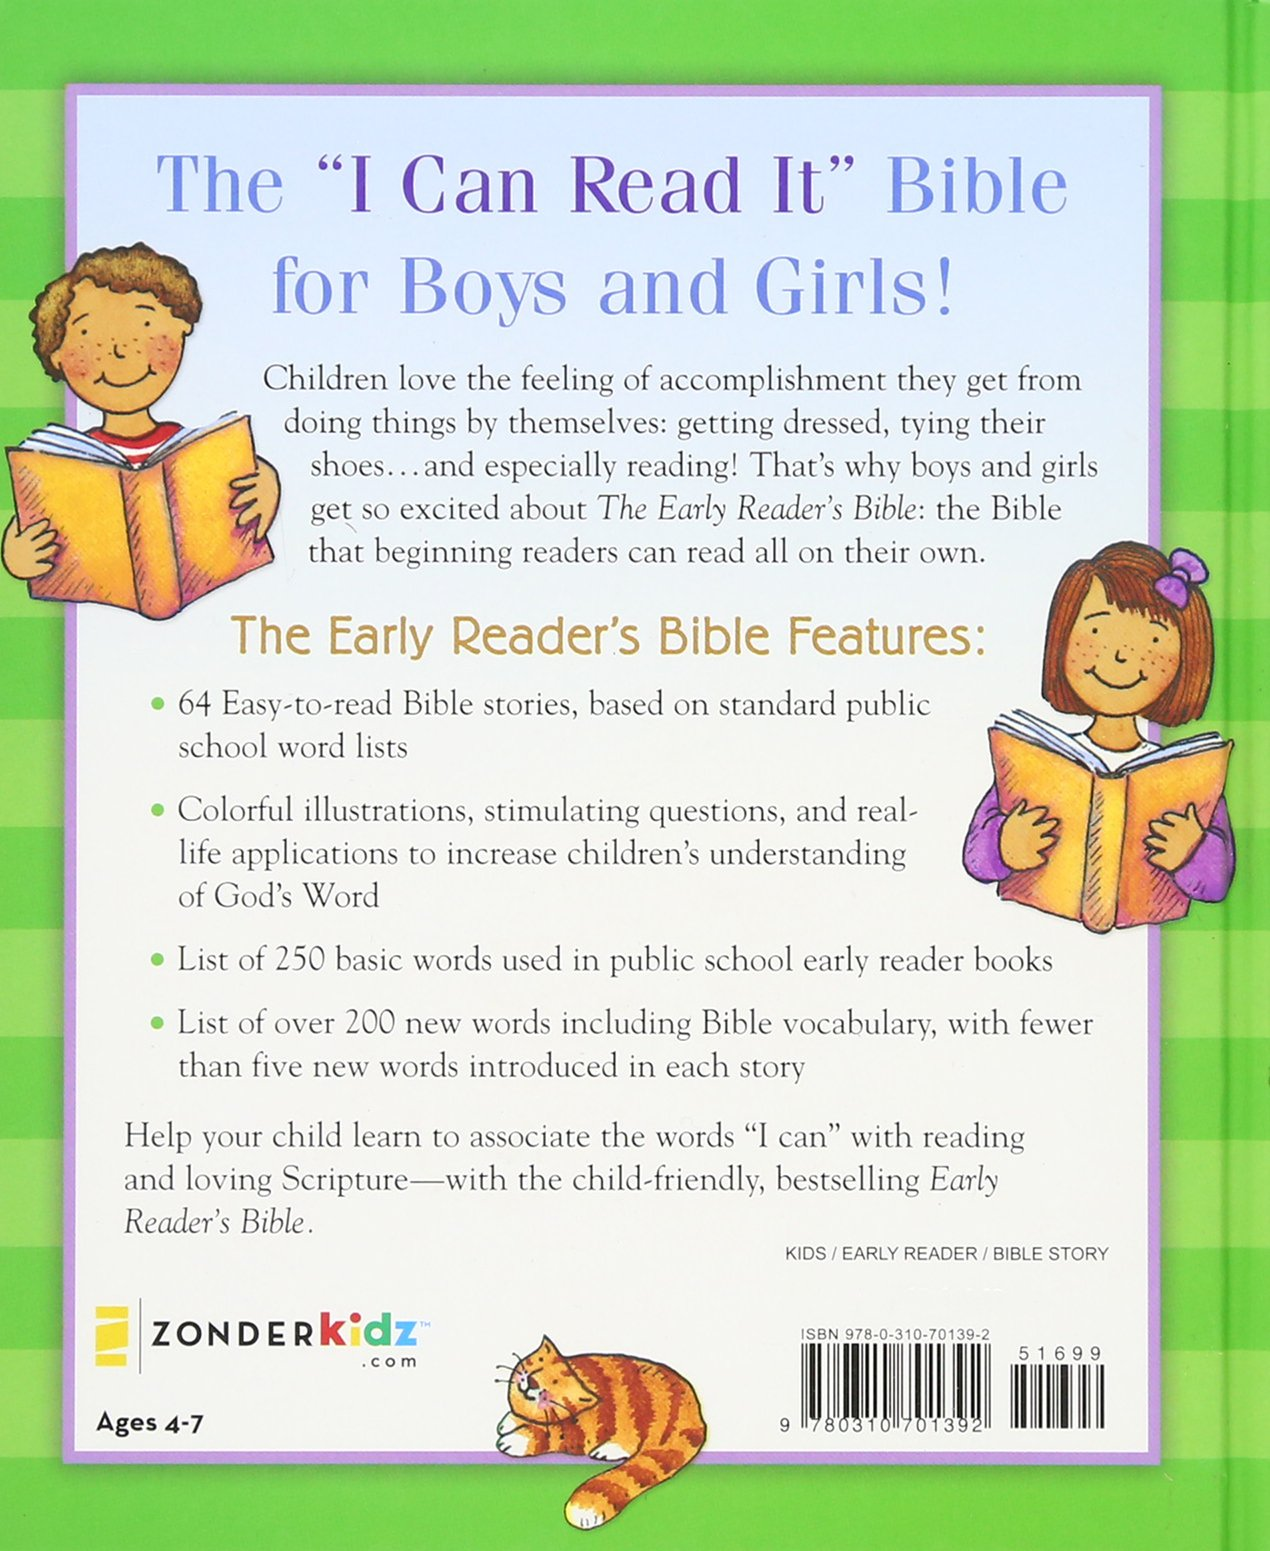 early readers bible v gilbert beers 9780310701392 amazon com